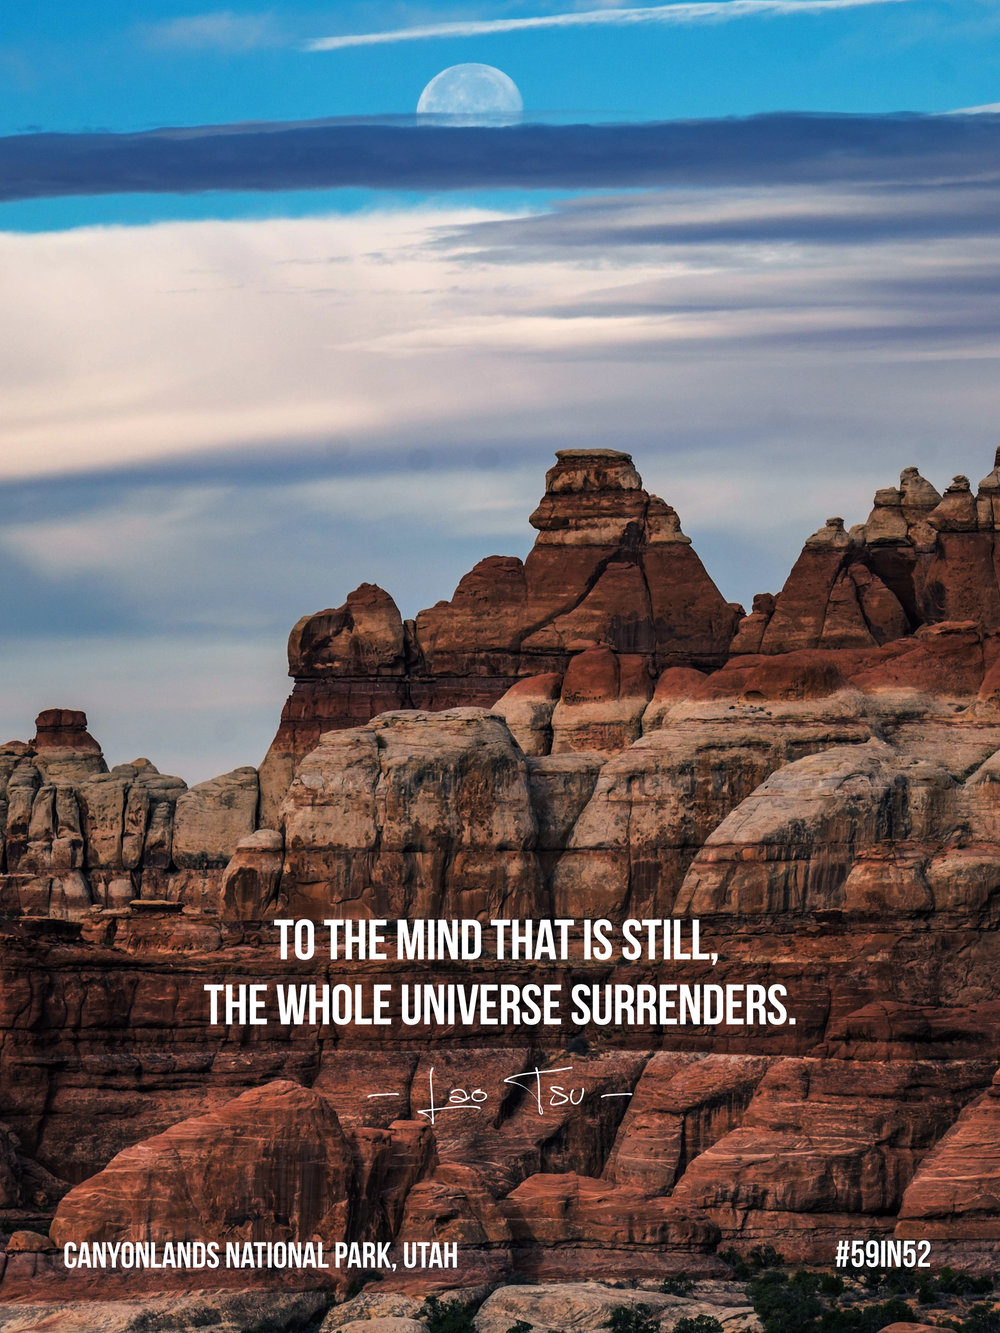 'To the mind that is still, the whole universe surrenders.' - Lao Tsu